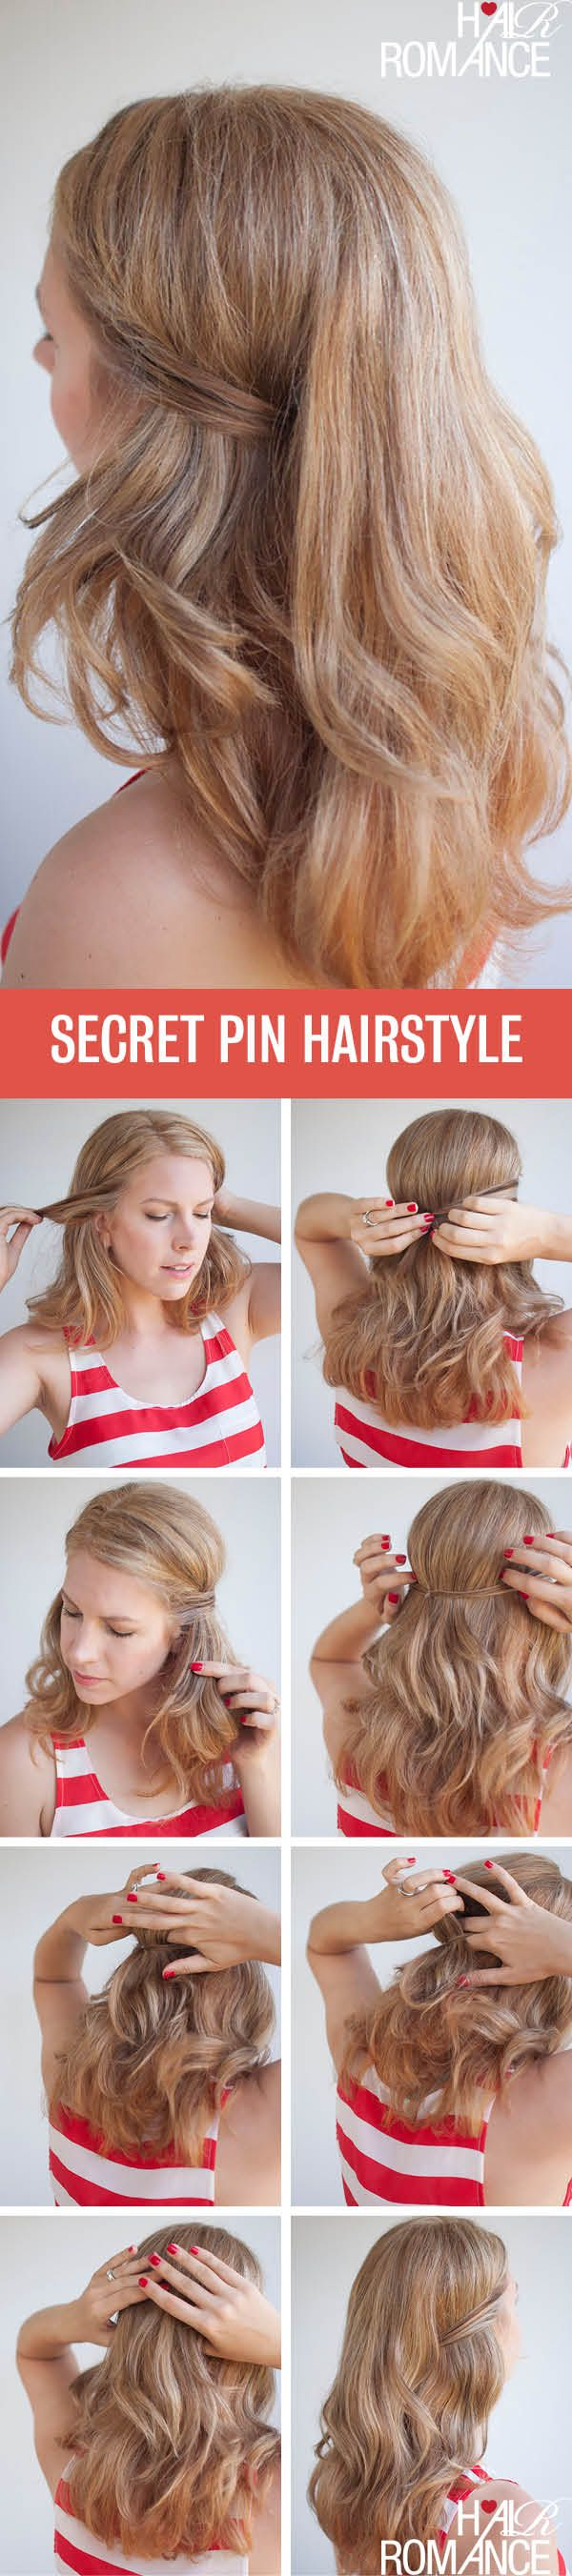 Two easy ways to pin back your hair